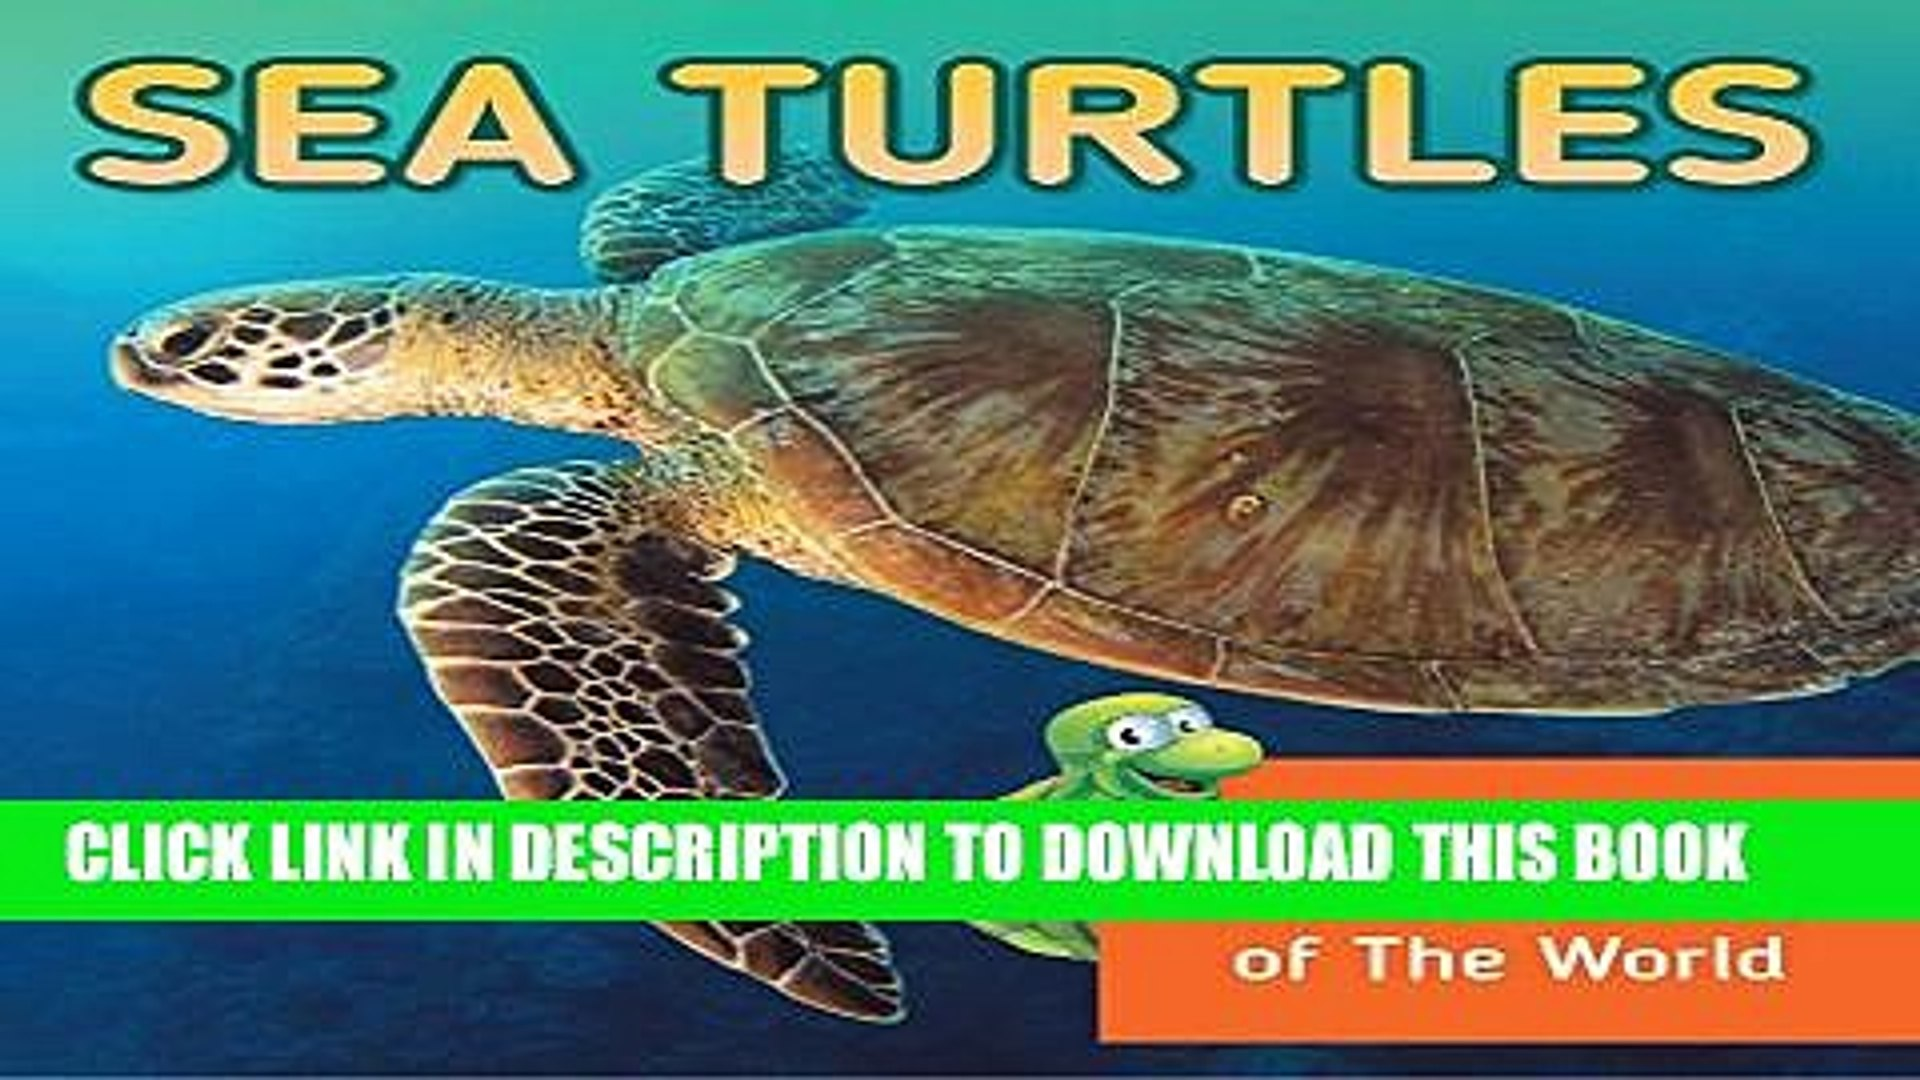 [PDF] Sea Turtles: Fun Facts About Turtles of The World: Marine Life and Oceanography for Kids